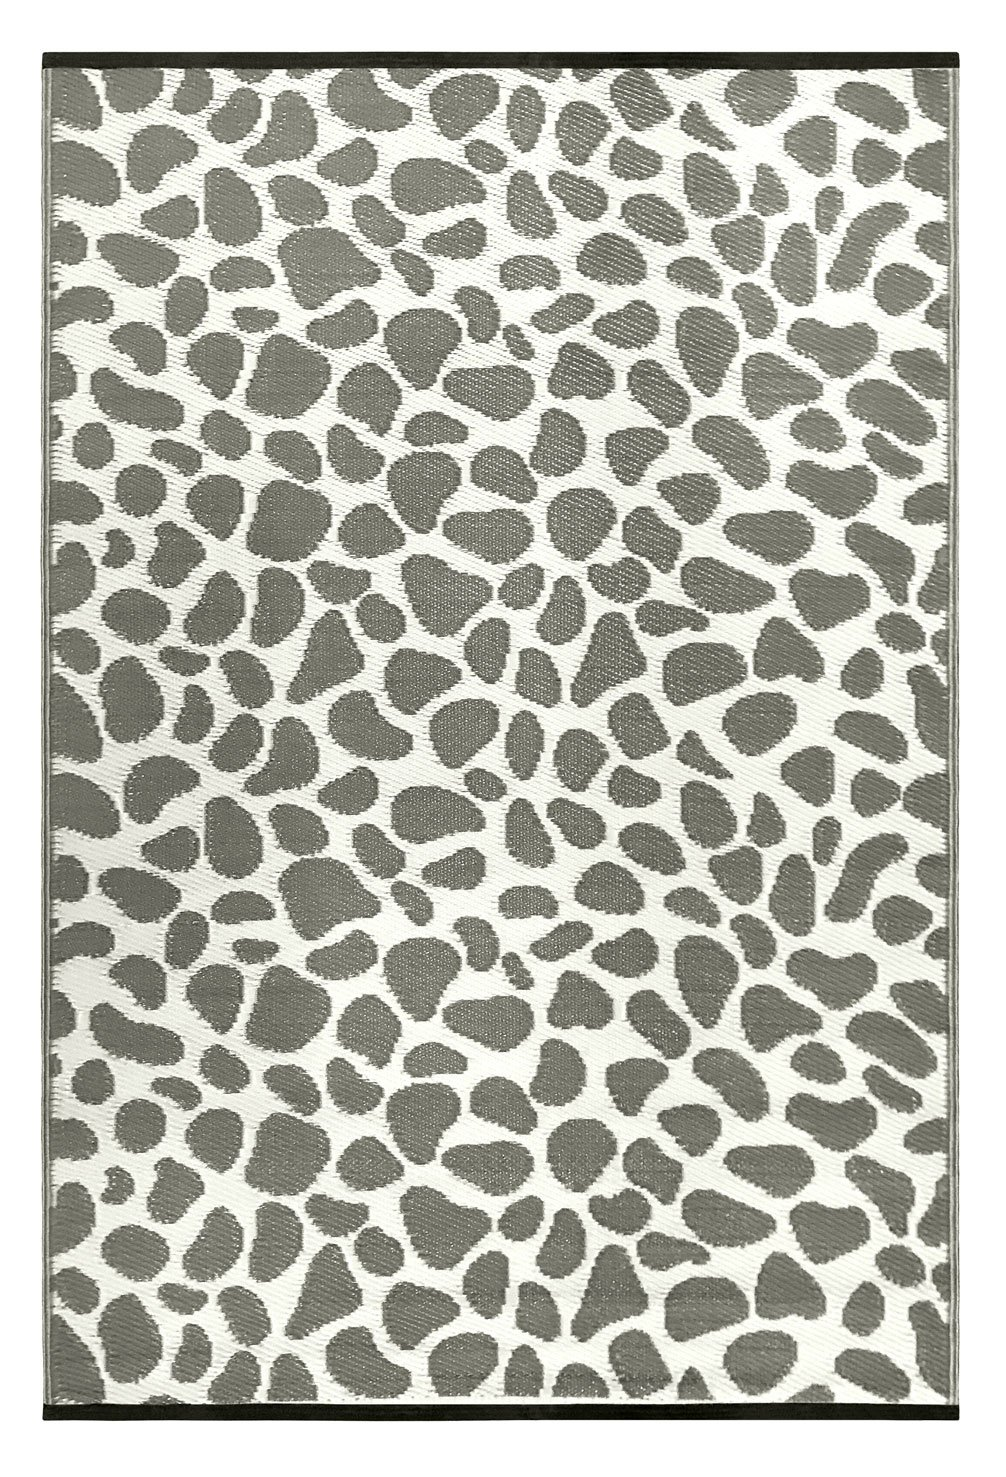 Outdoor/Light Weight/Reversible Eco Plastic Rugs (3 x 5, Grey/White)